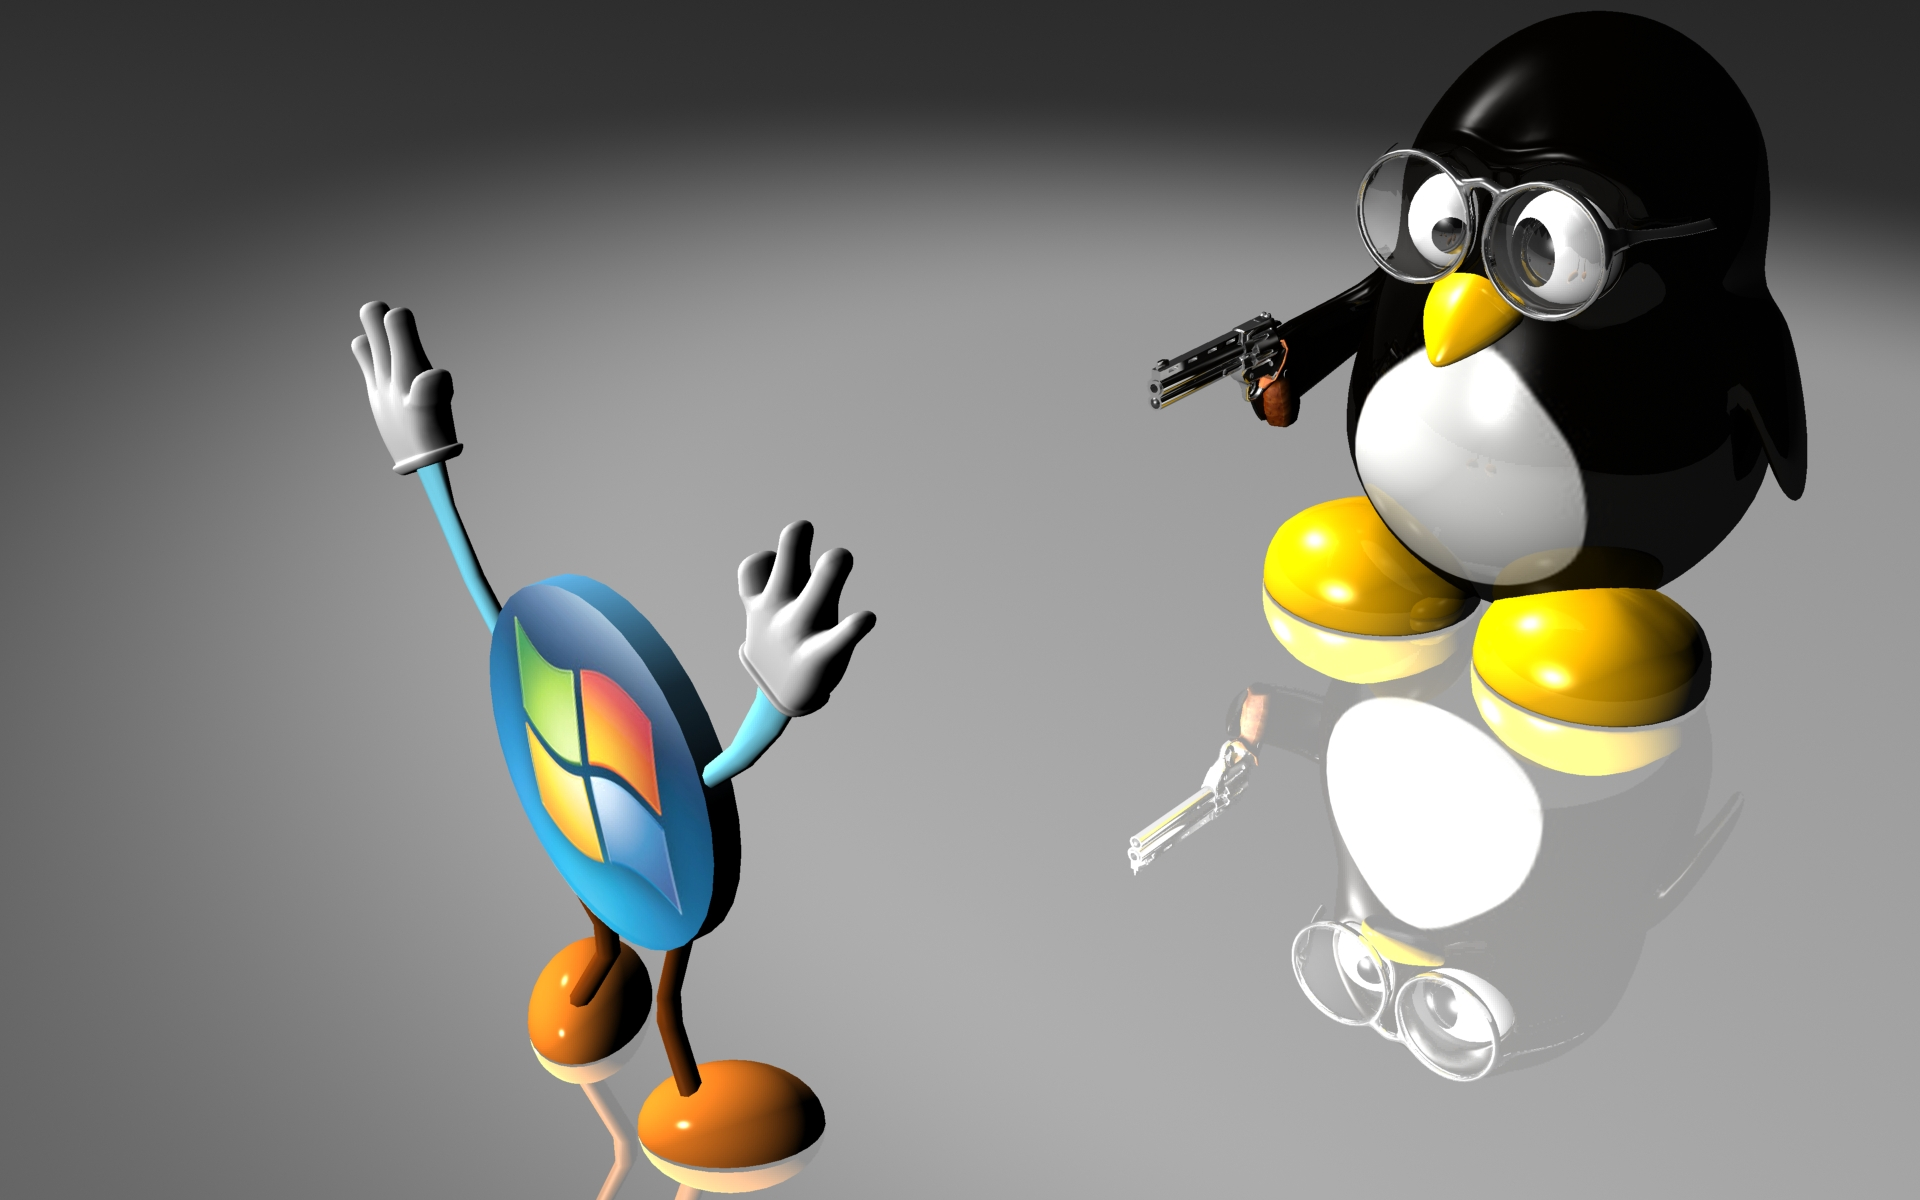 Technologie - Linux  - Penguin - Arbre - Save - Bleu   - Fight - Gun - Humour - Produits - Windows Fond d'écran